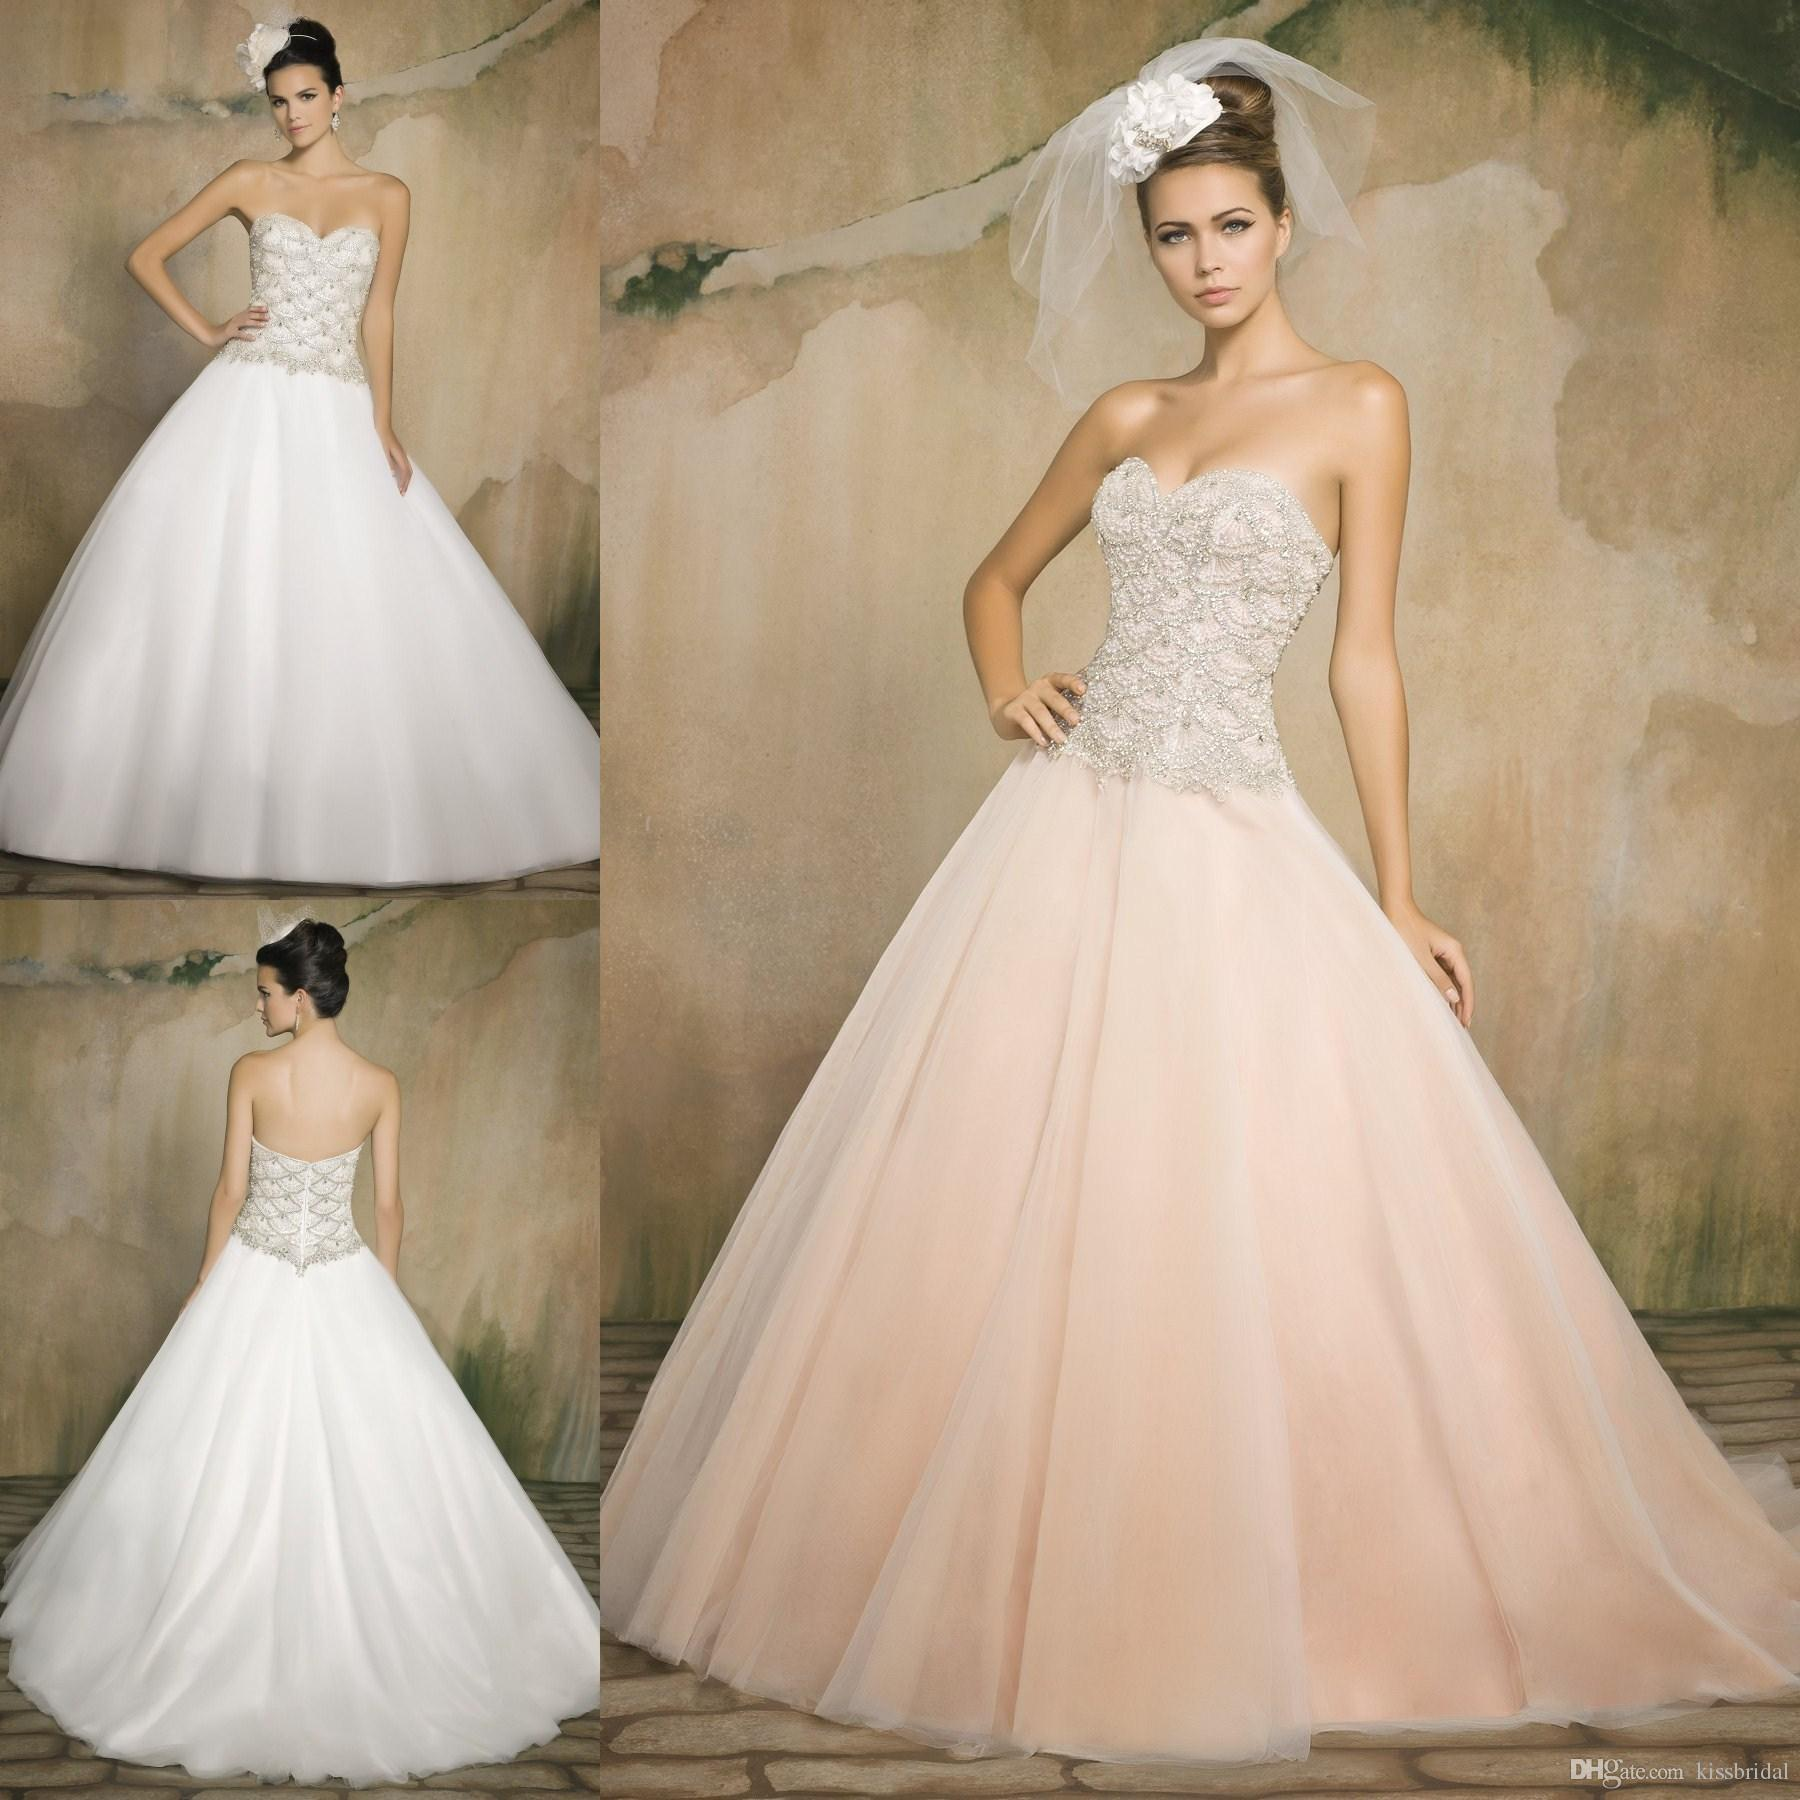 Discount 2015 Blush Ball Gown Wedding Dresses Beaded Lace Sweetheart A Line Court Train Tulle Bridal Gowns Custom Size With Sleeves